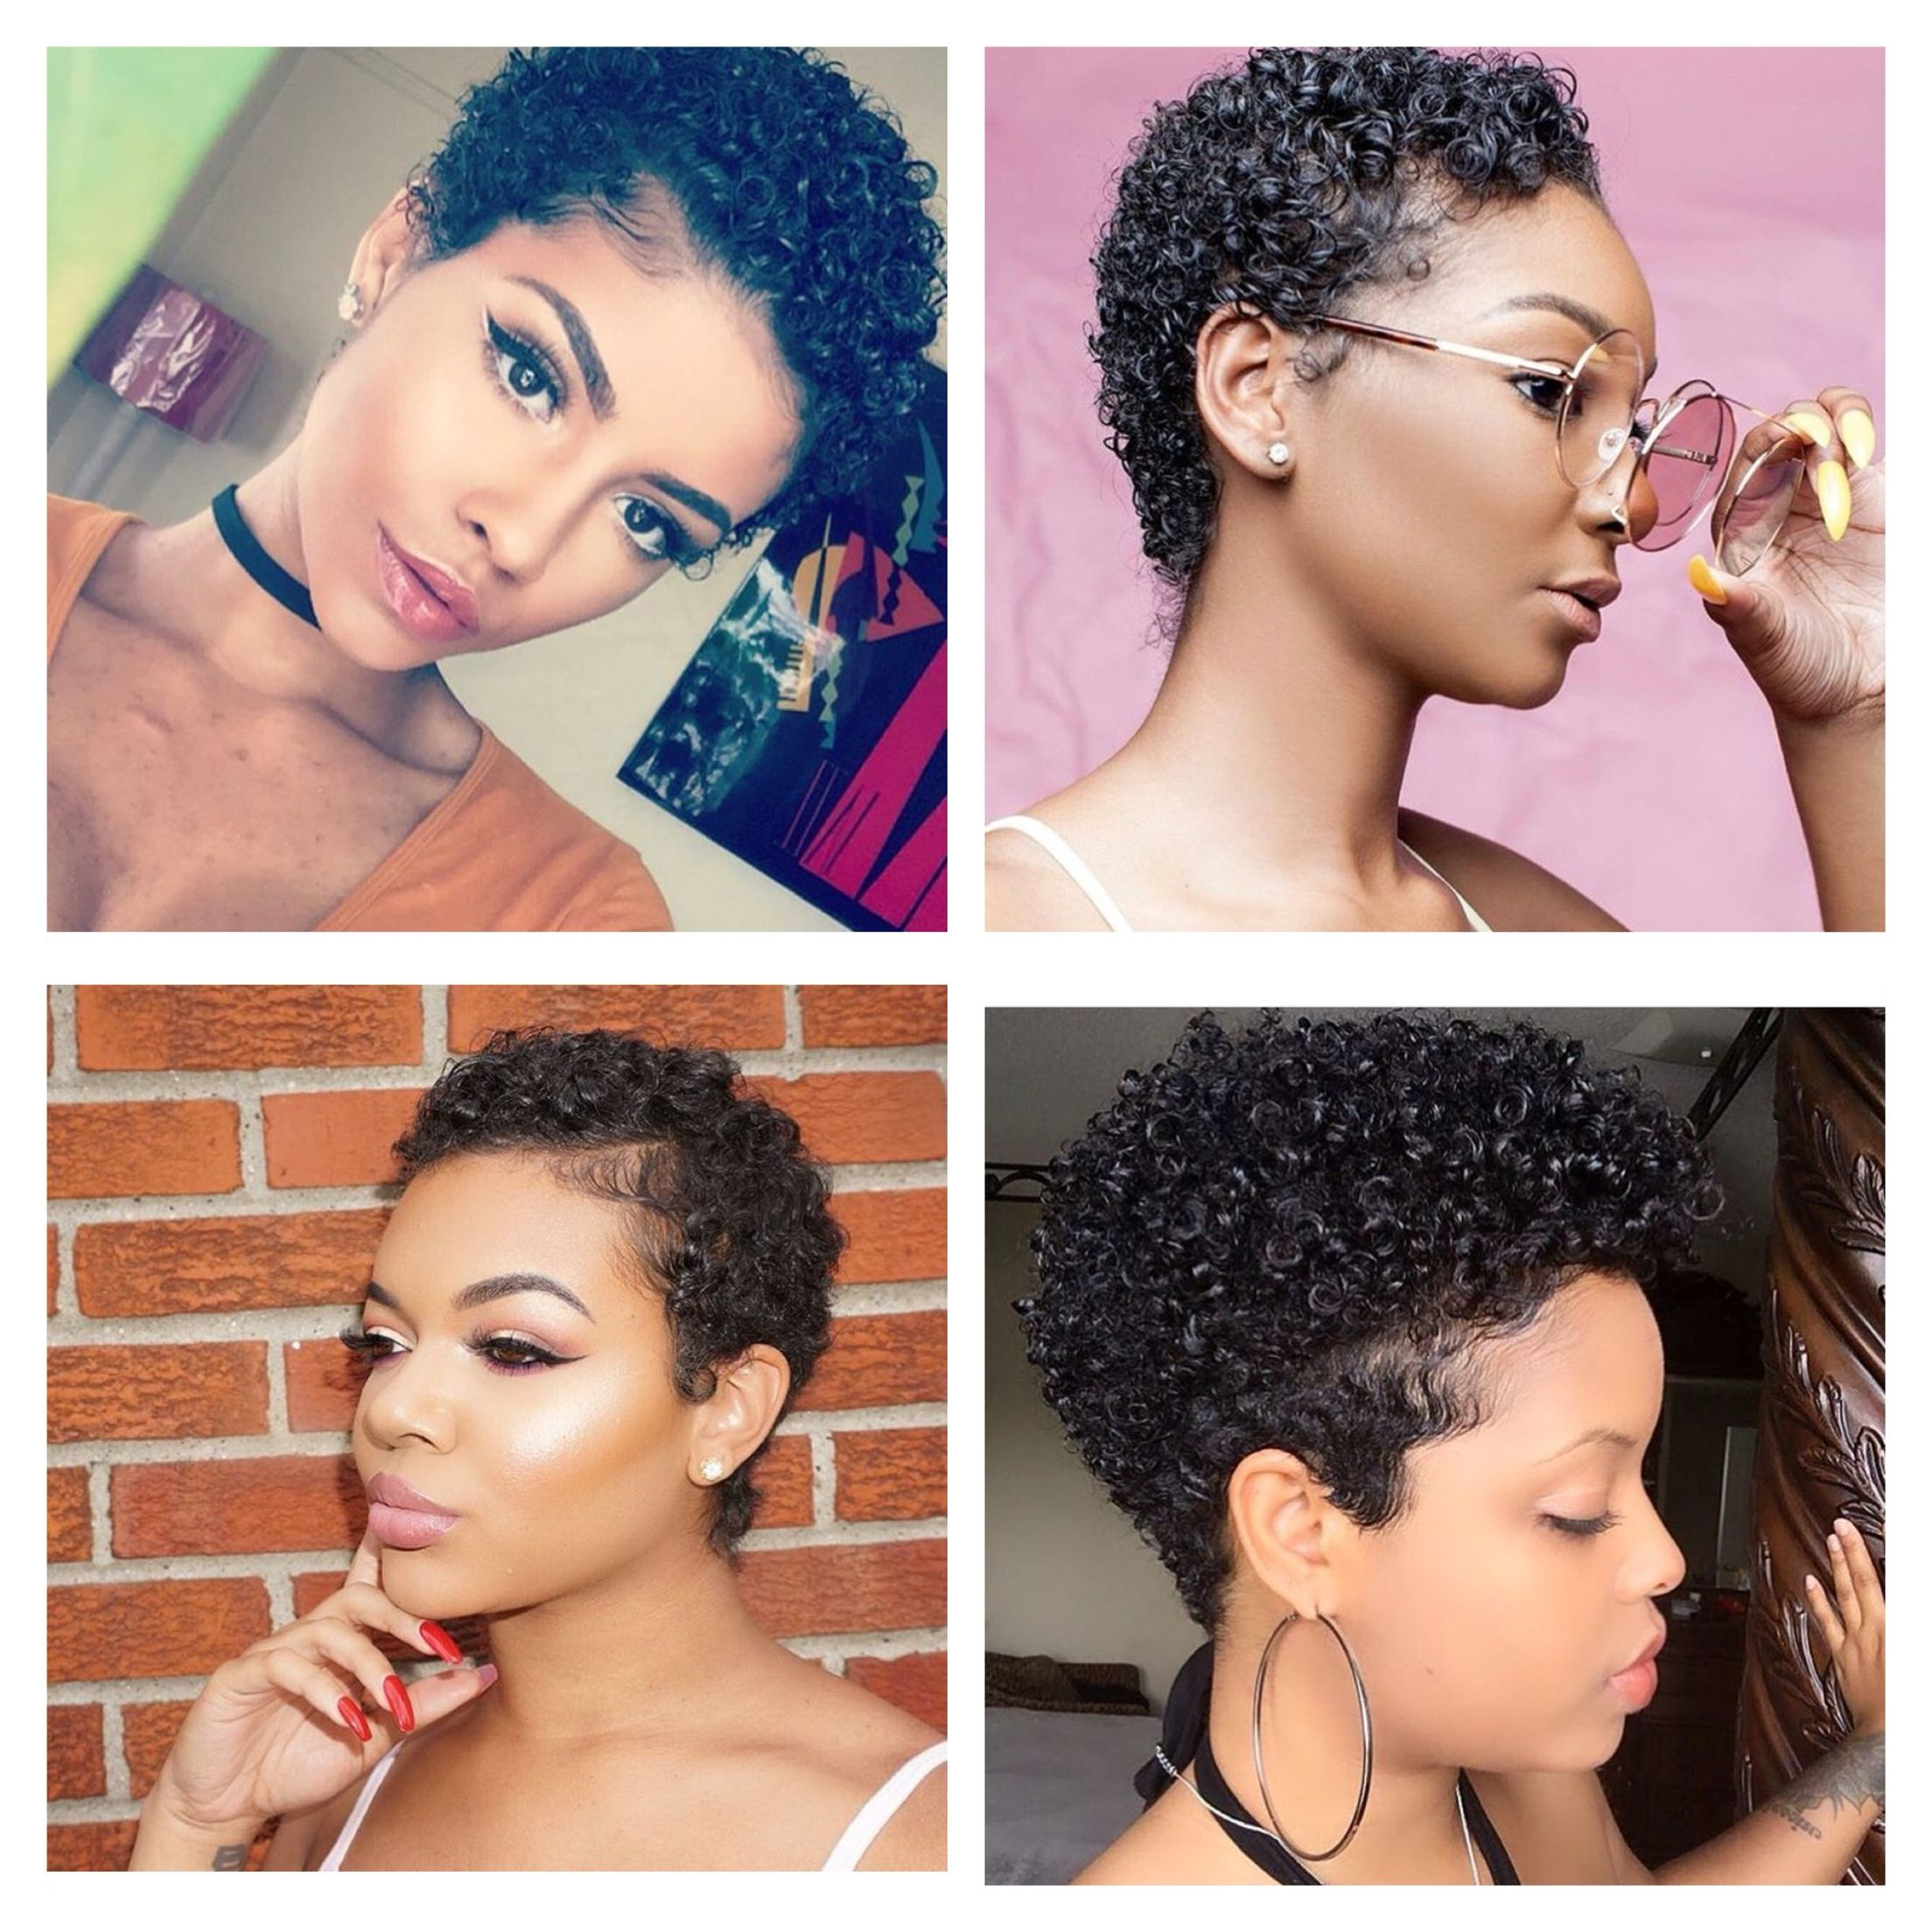 Big Chop Styles I Love I Do Not Own These Photos With